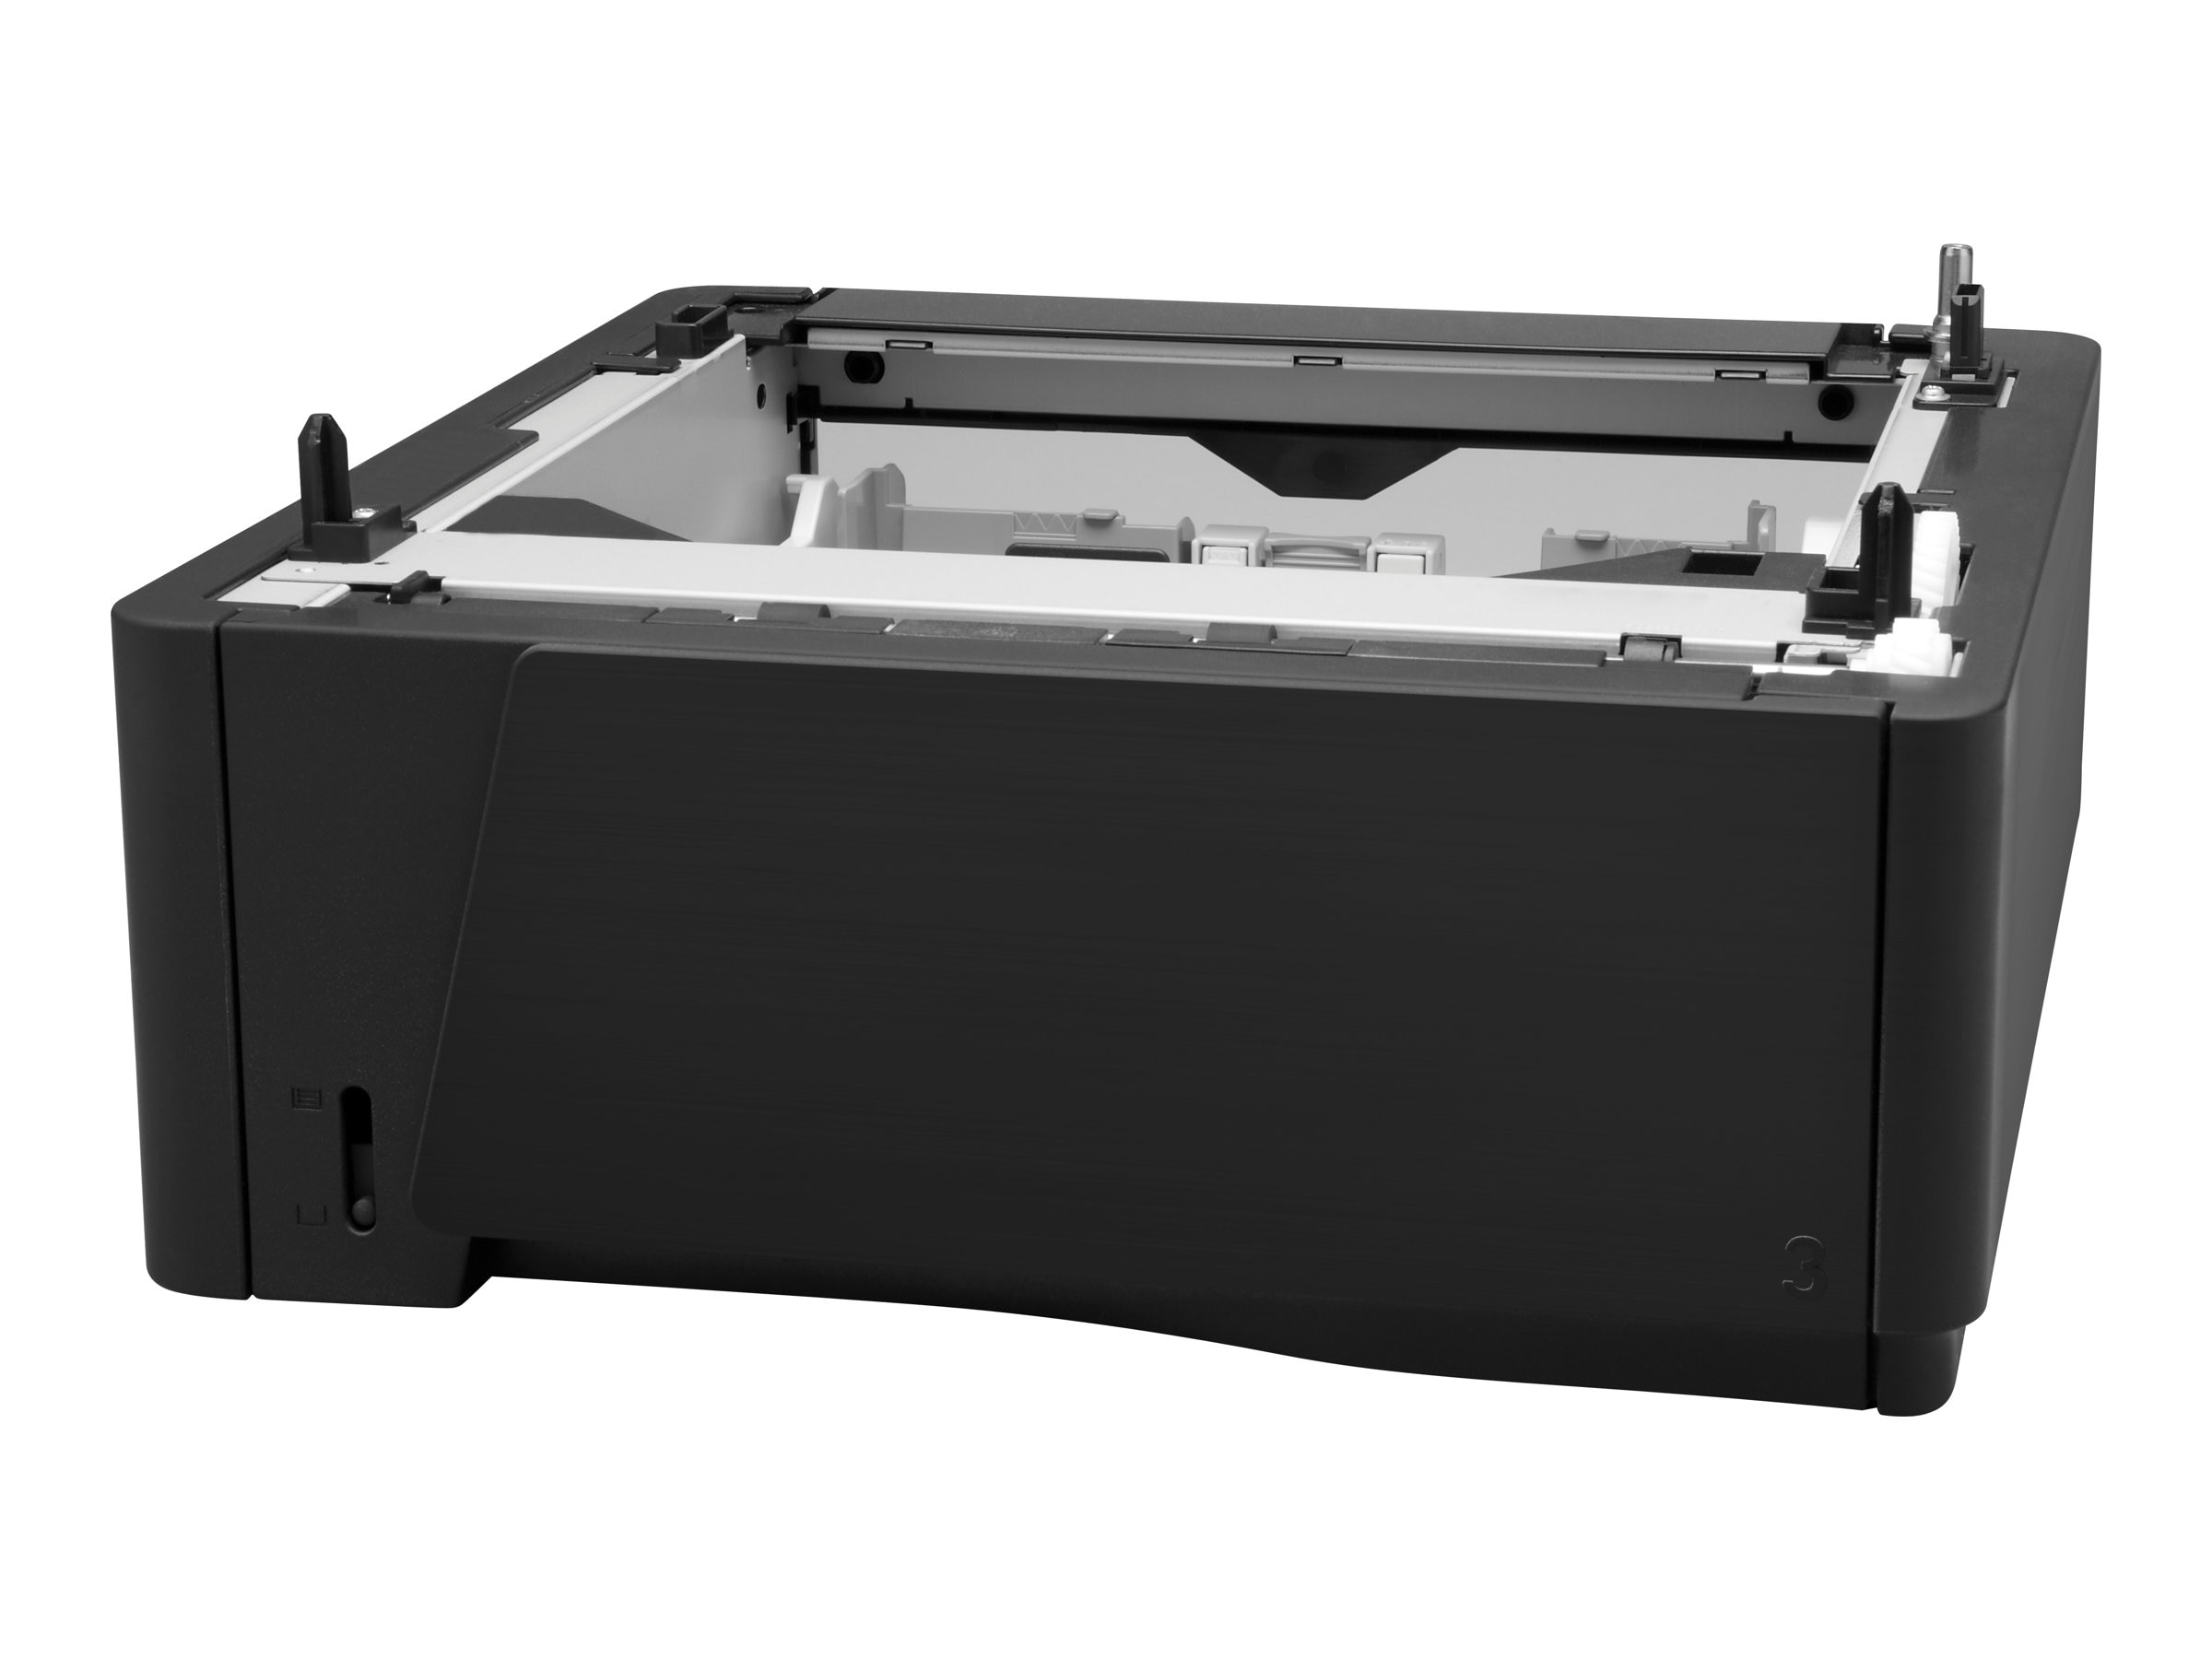 HP 500-Sheet Feeder for HP LaserJet Pro 400 M401 Series Printers